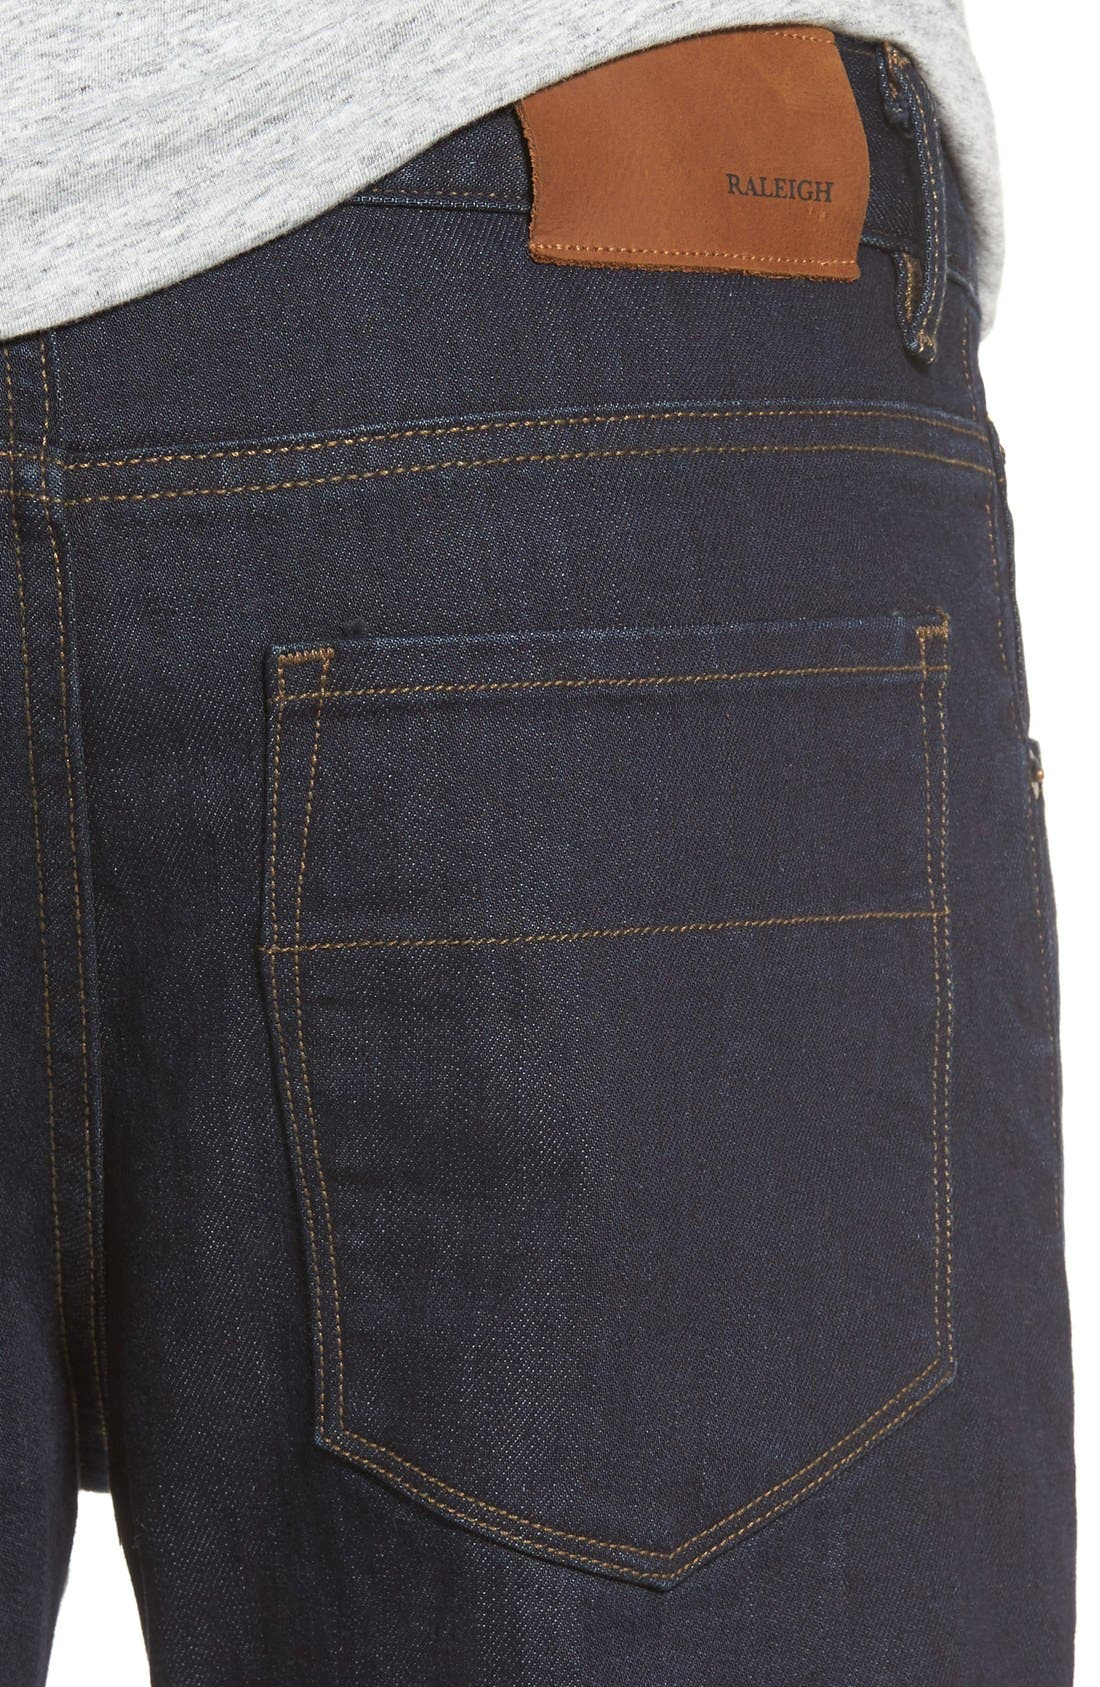 'Jones' Slim Straight Leg Jeans,                             Alternate thumbnail 4, color,                             418